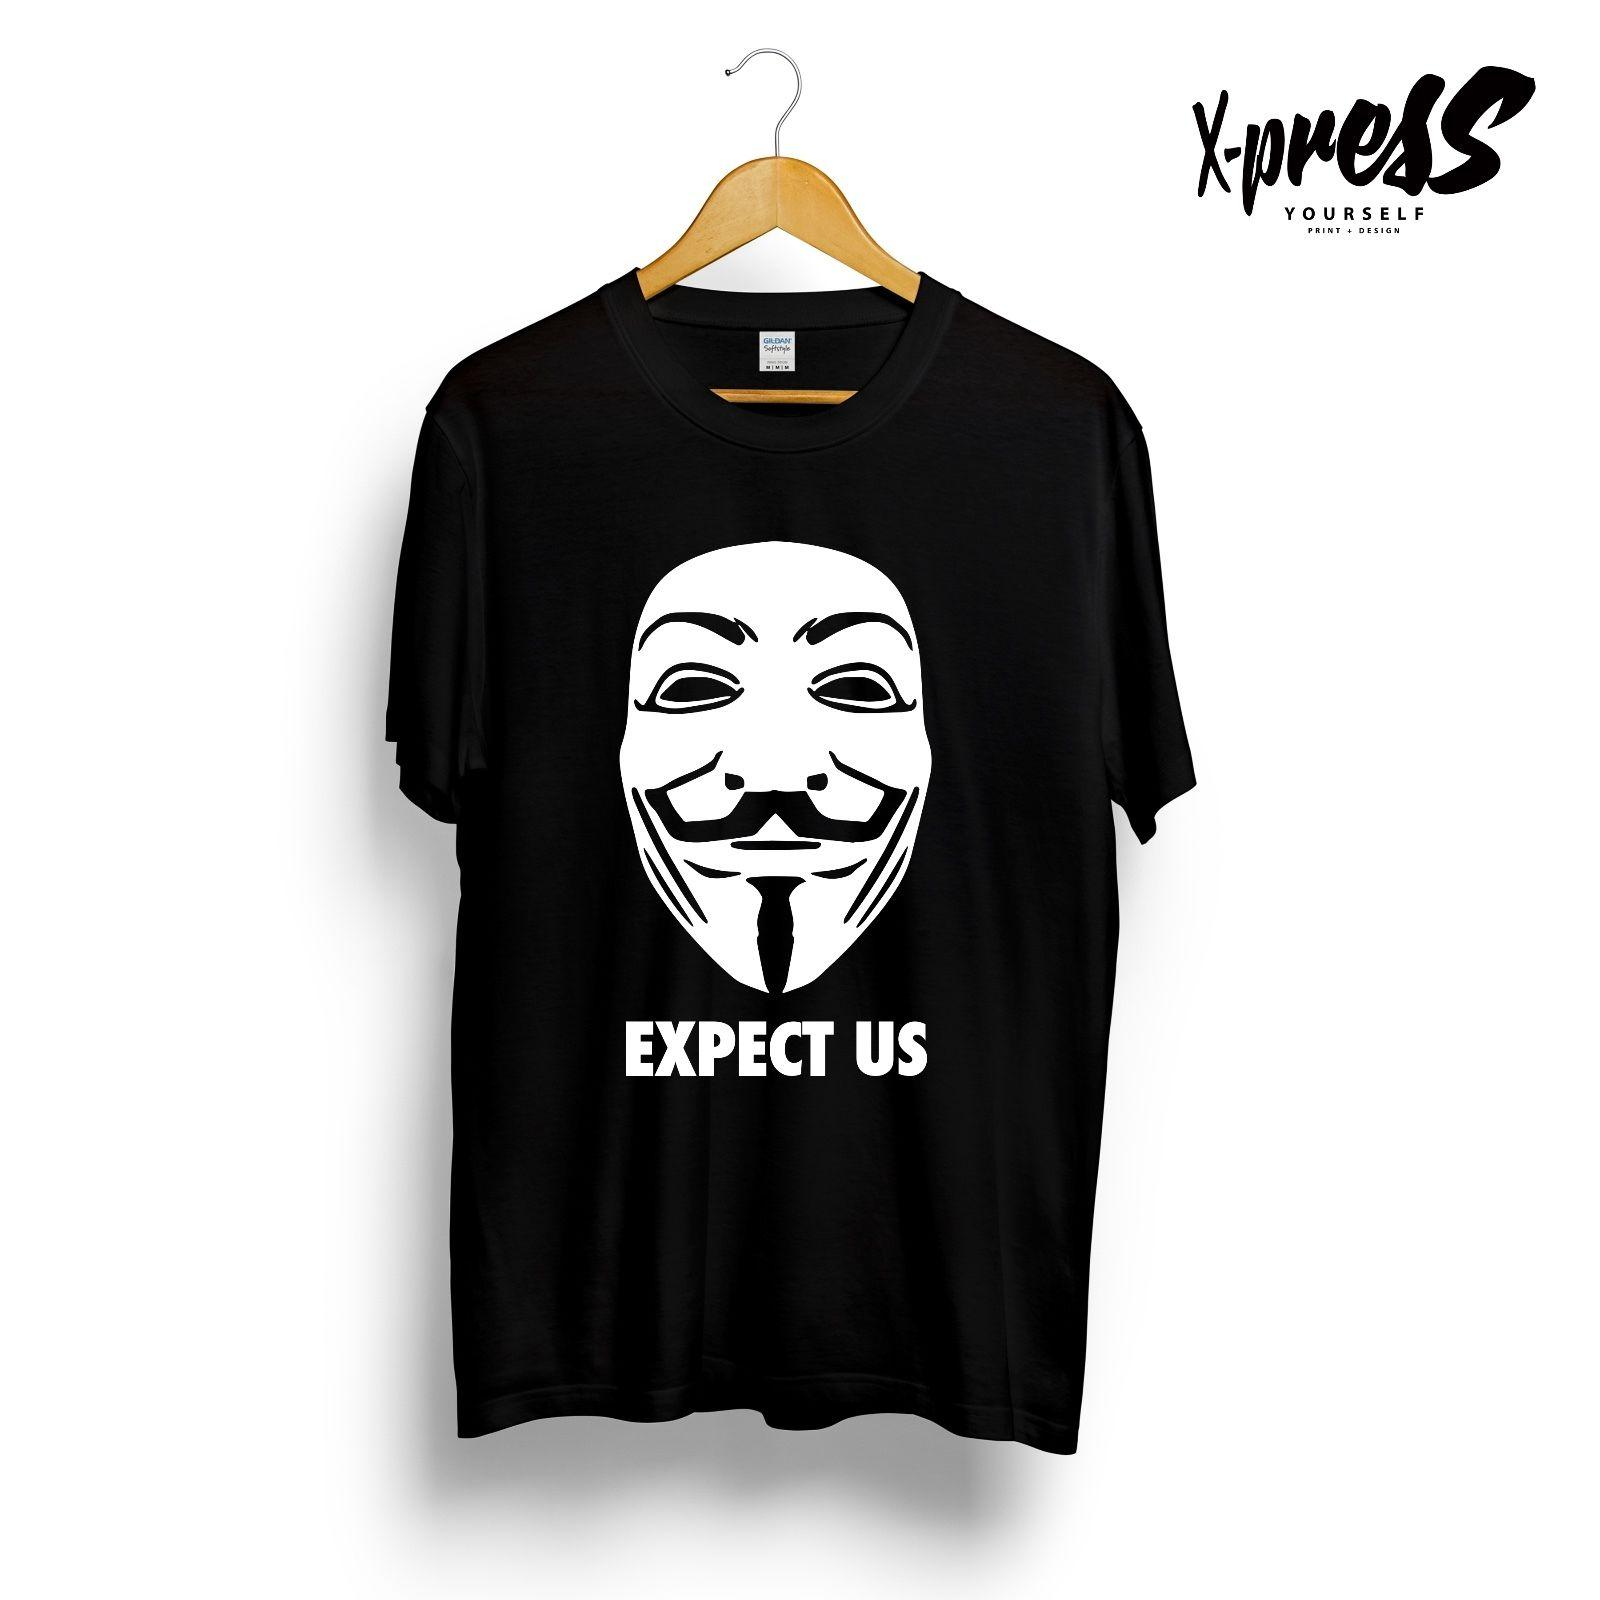 ec818b2aaea6 EXPECT US PRINTED MENS T SHIRT ANONYMOUS INTERNET YOUTUBE REBEL GUY FAWKES  MASK Personality 2018 Brand T Shirt Top Tees Design Your Own T Shirts  Womens ...